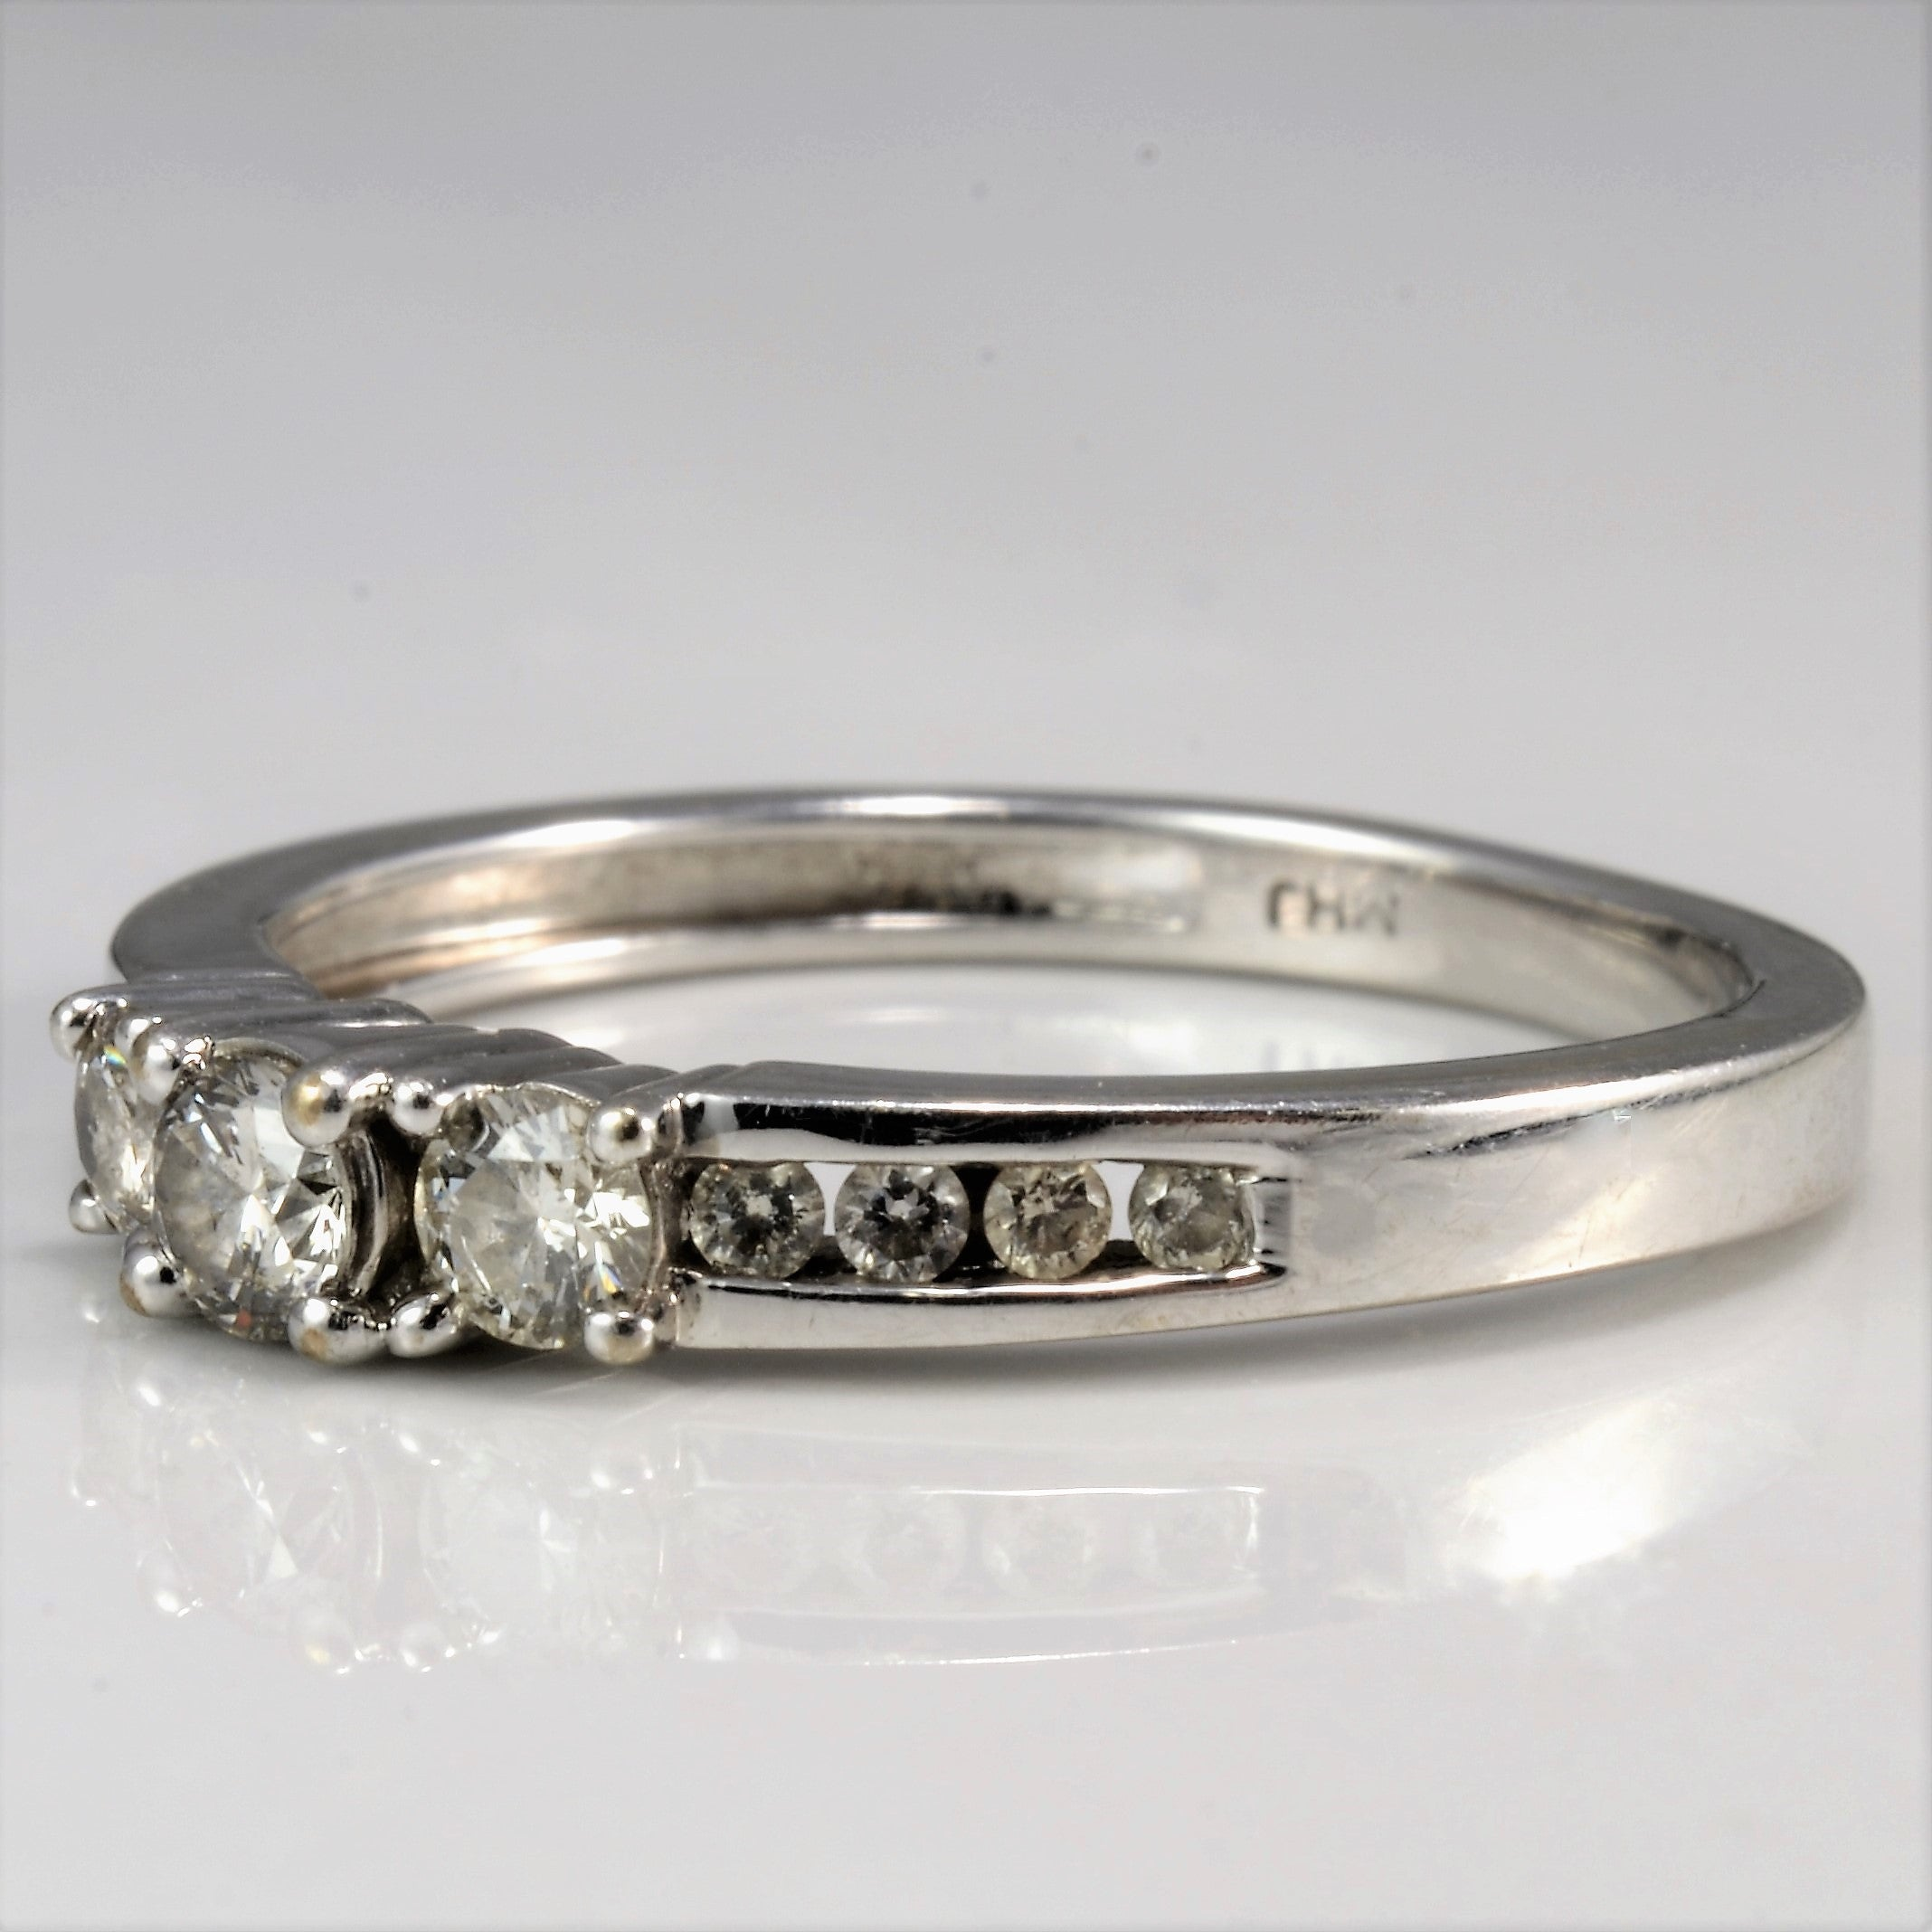 Three Stone Diamond Engagement Ring | 0.34 ctw, SZ 6.25 |